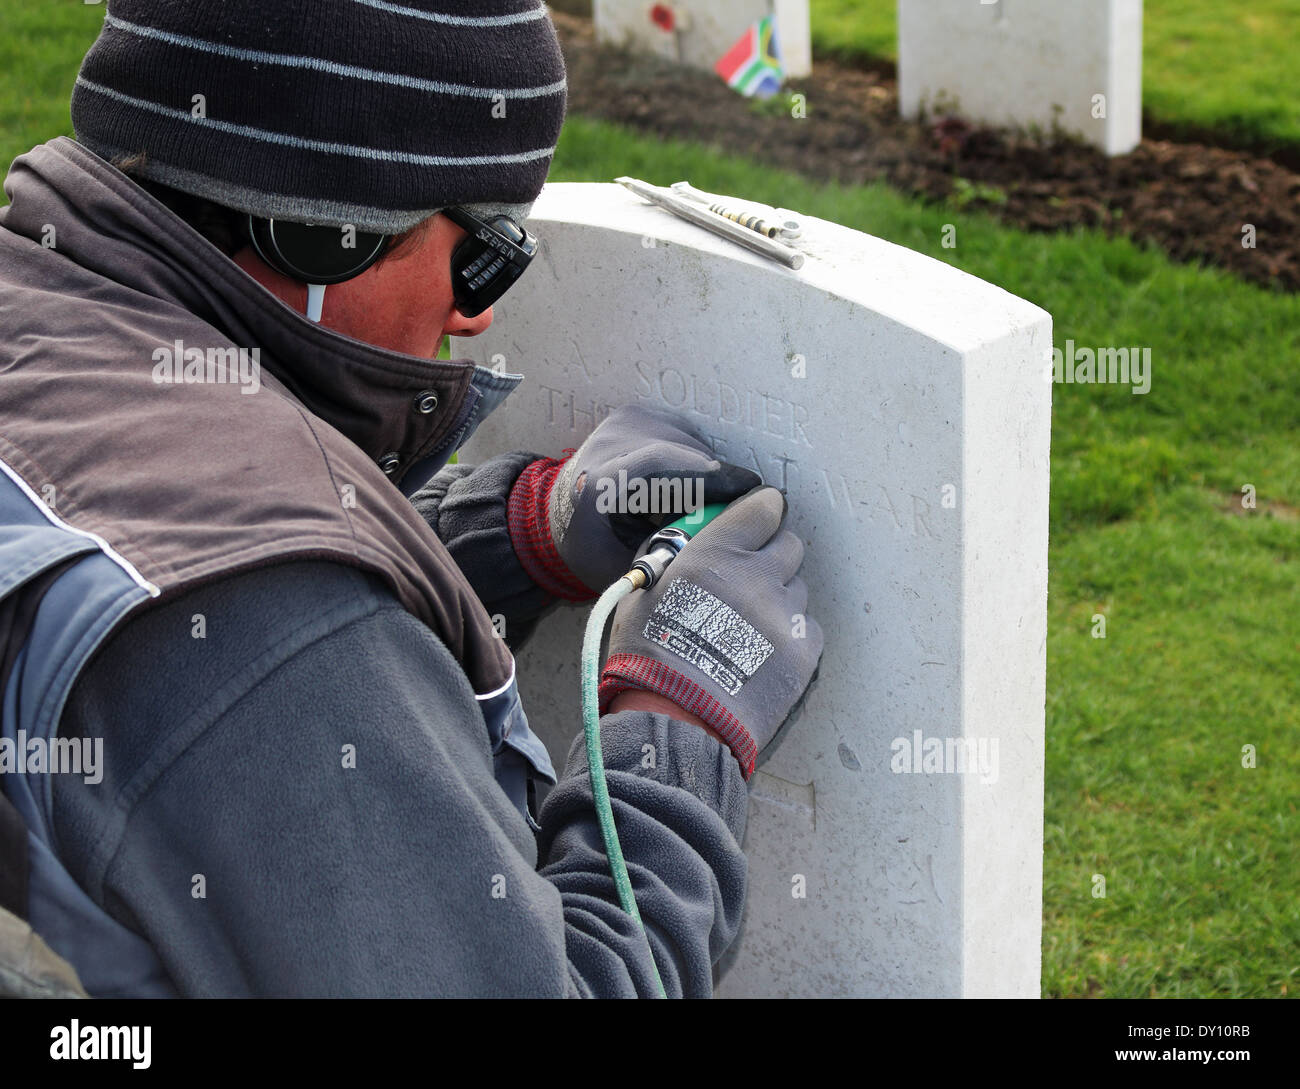 Workman engraving a World War 1 Soldiers Headstone in a War Cemetery in Flanders, Belgium - Stock Image